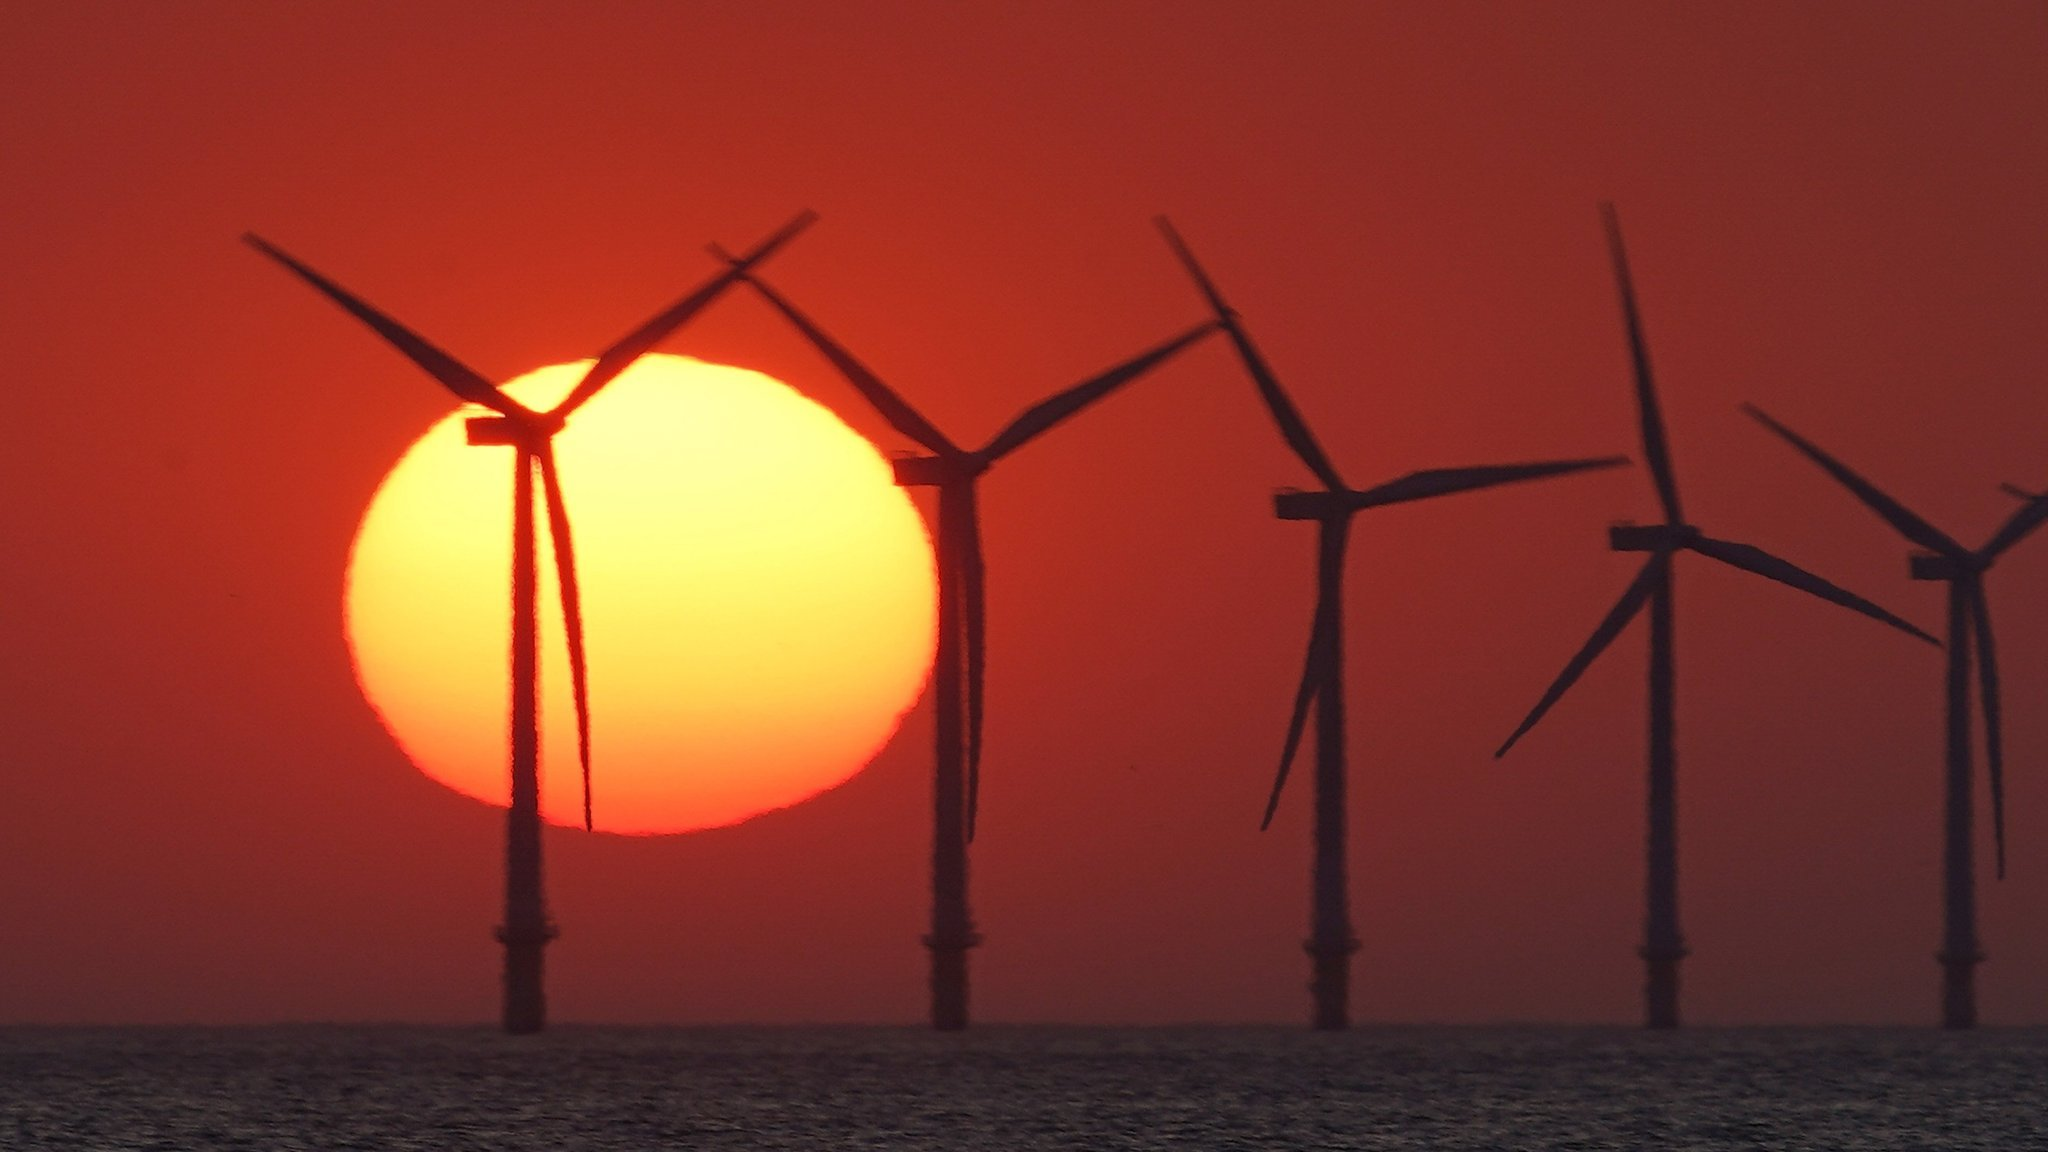 Renewable energy auctions: bidding our way to a greener future